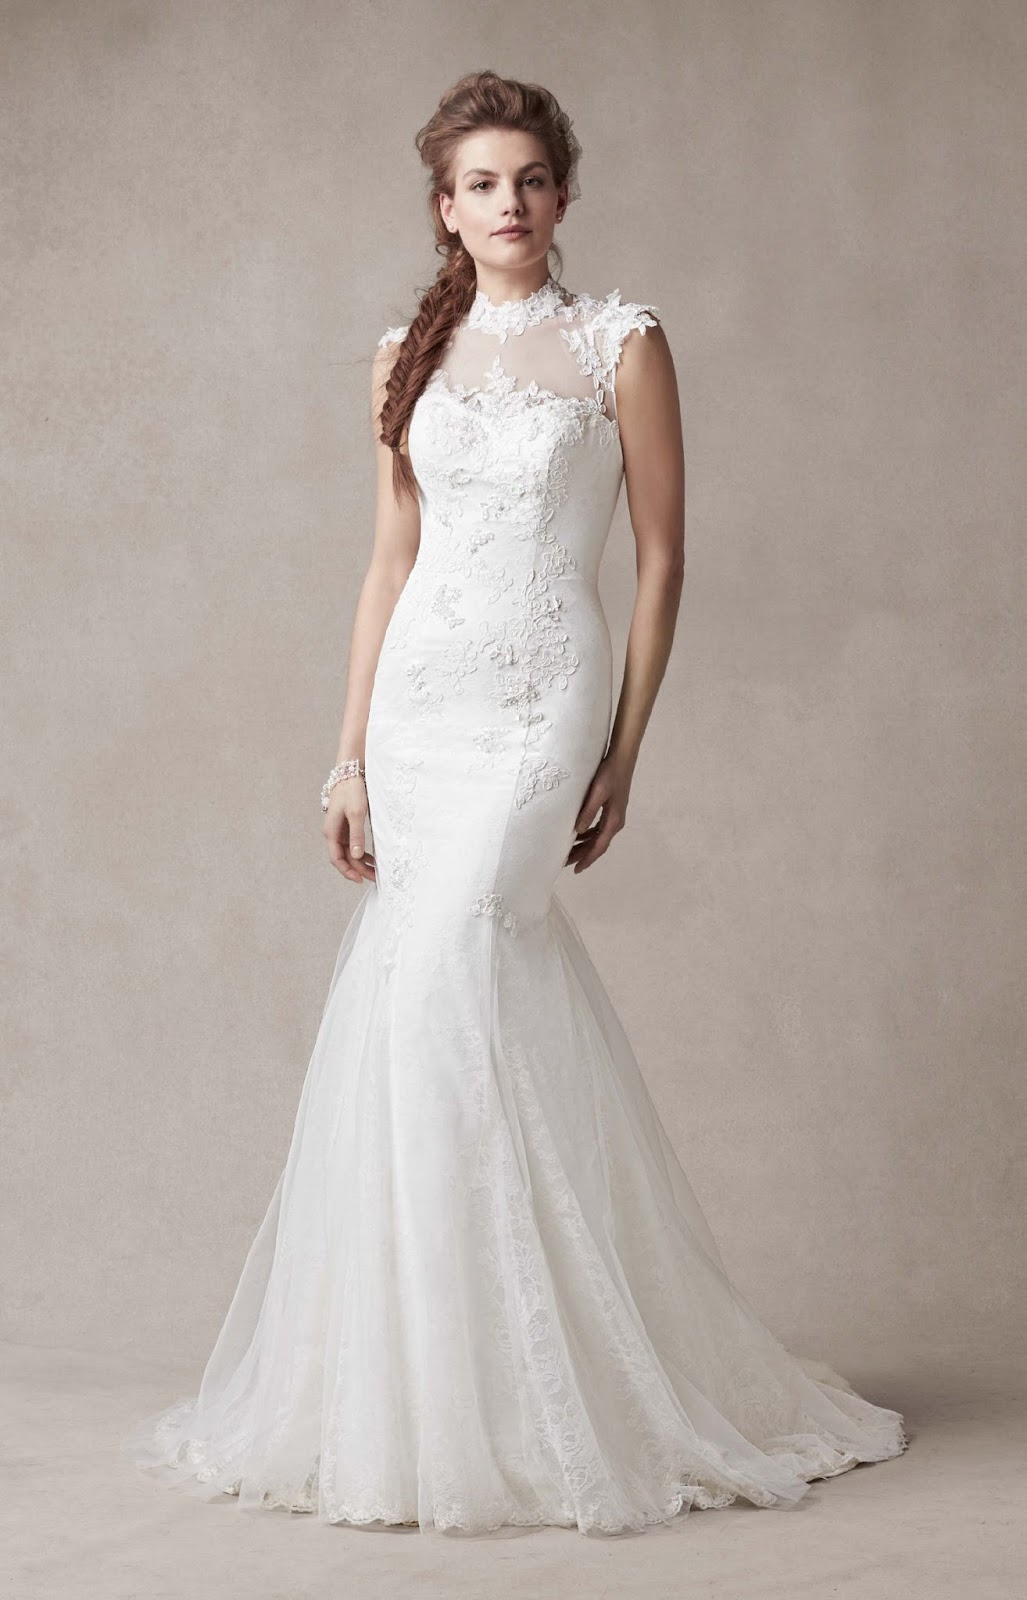 Very cheap used wedding dresses